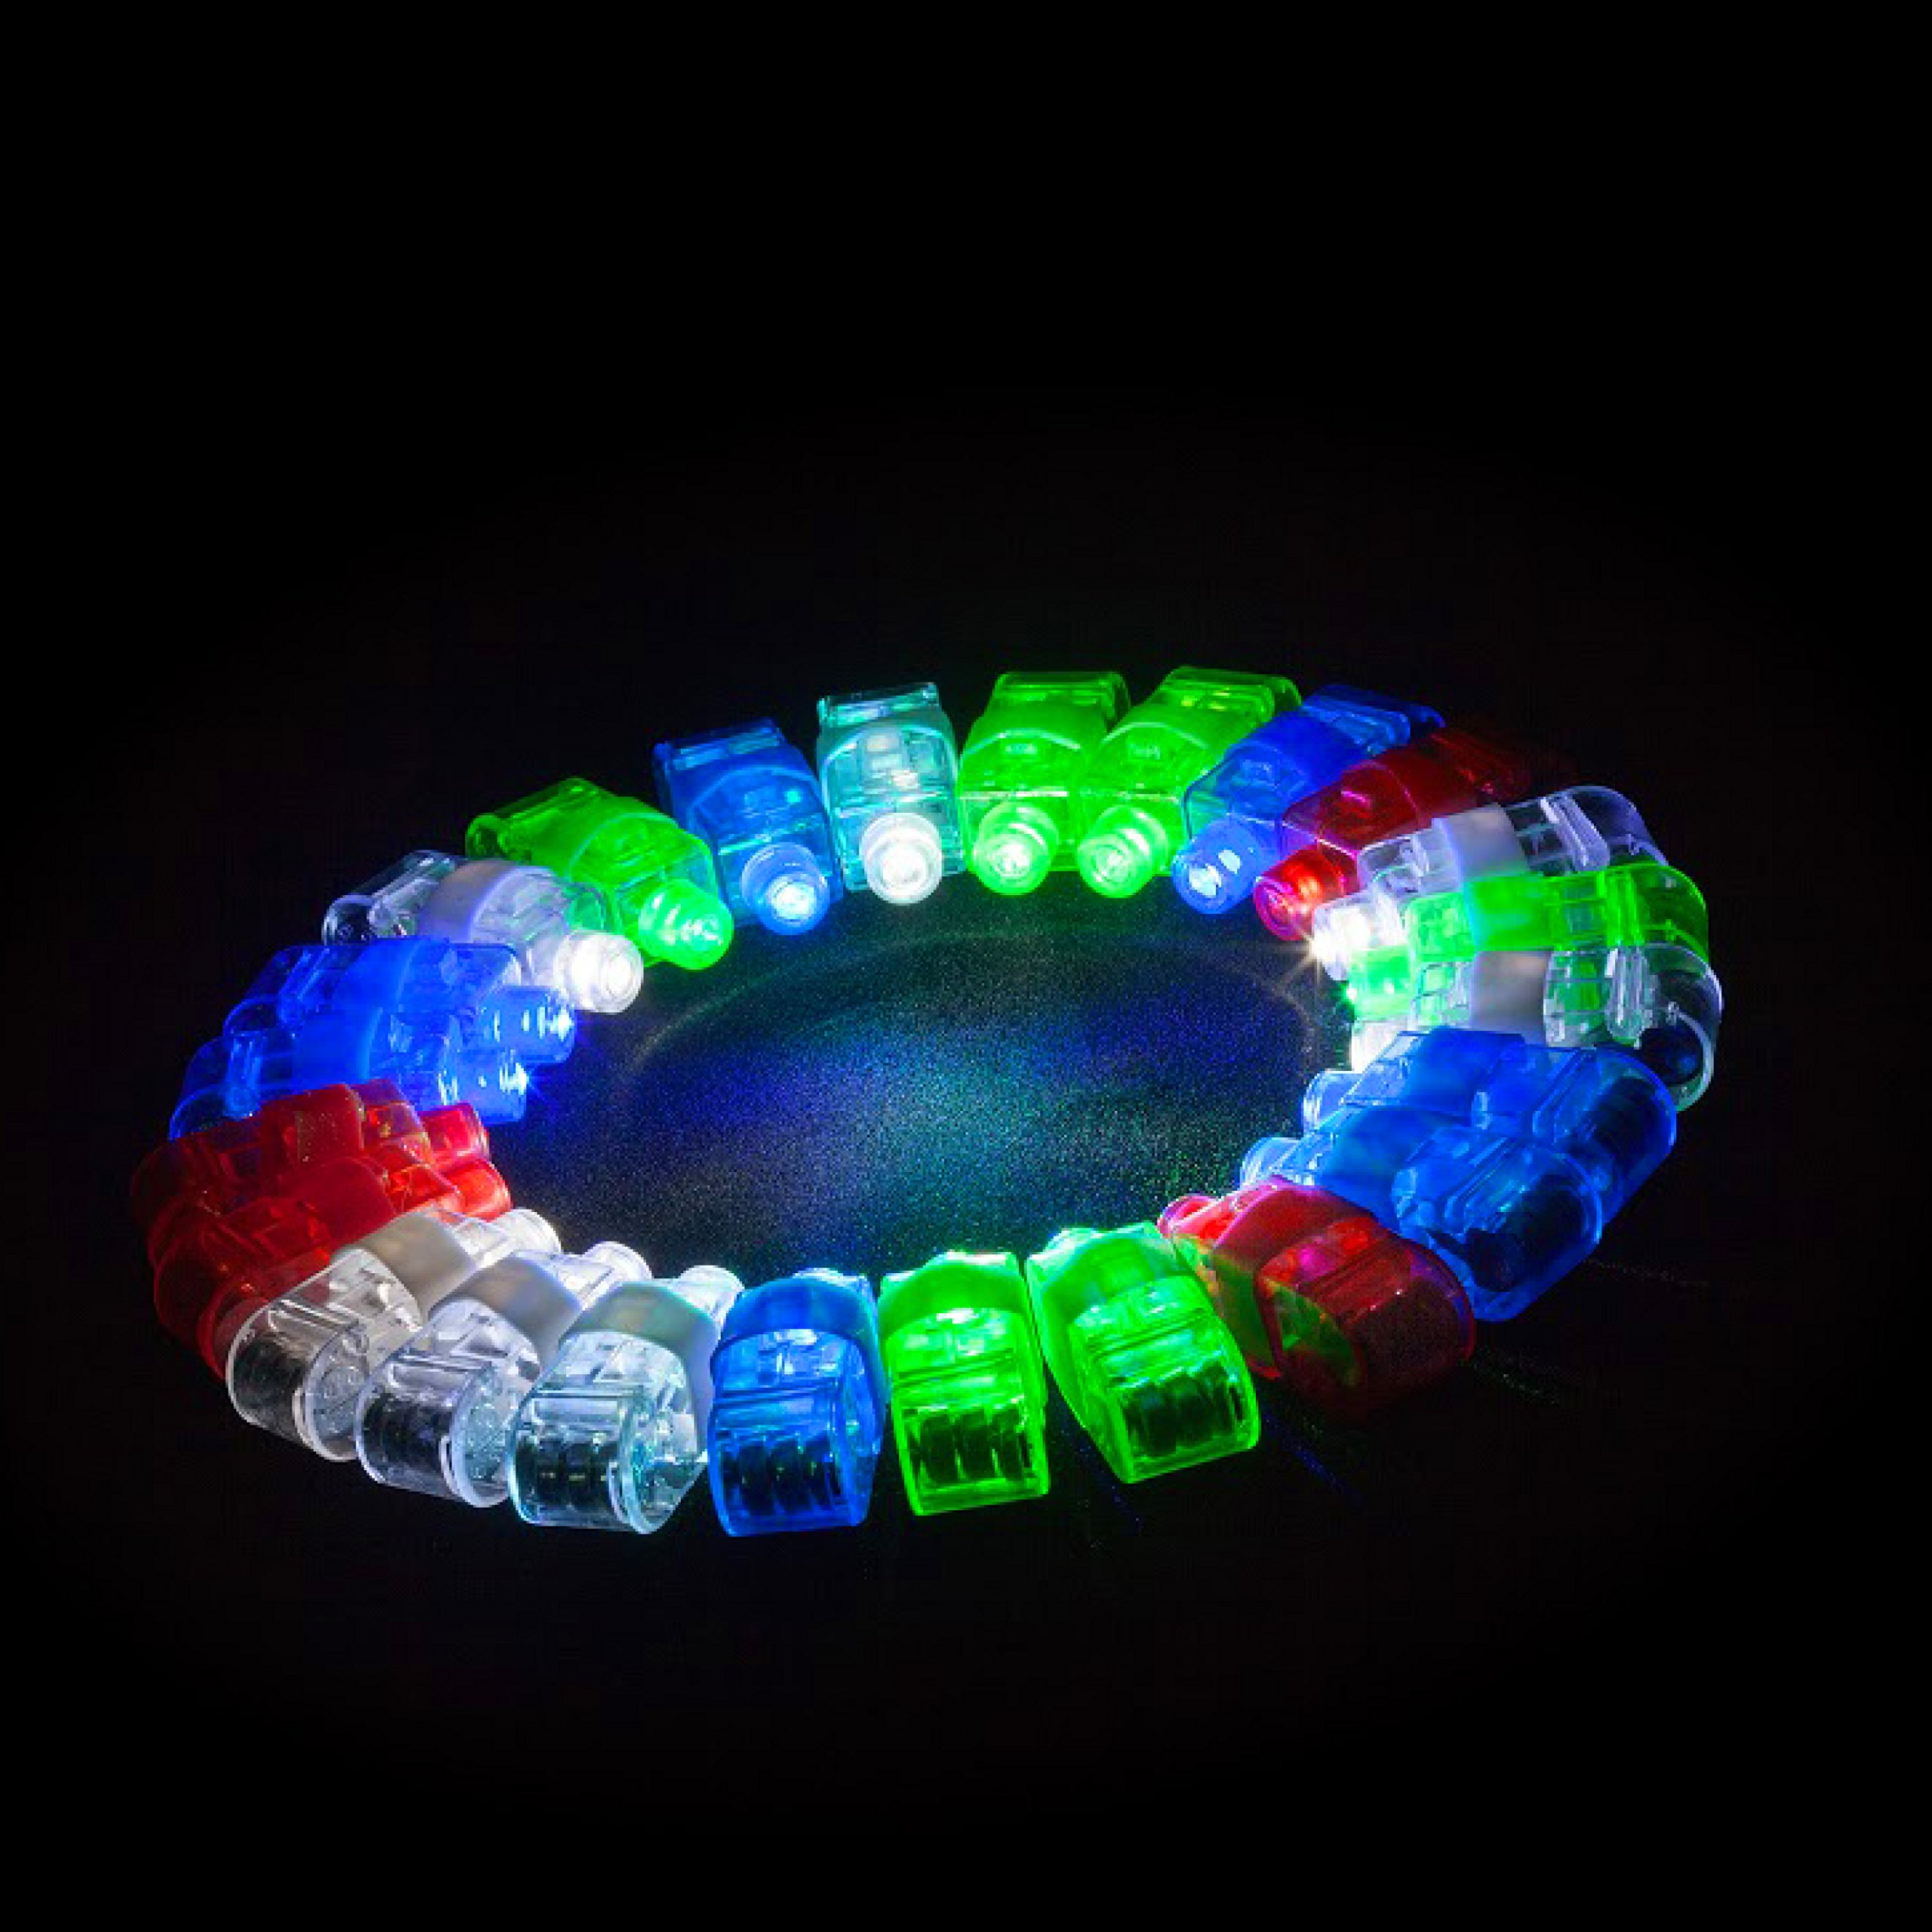 LED Glow Party Favors Party Supplies - 50 LED Glow Party Favor for Kids Glow in The Dark Party Supplies 32 Finger Light Up Toys + 13 Glow Rings + 5 Shades by PartySticks (Image #5)